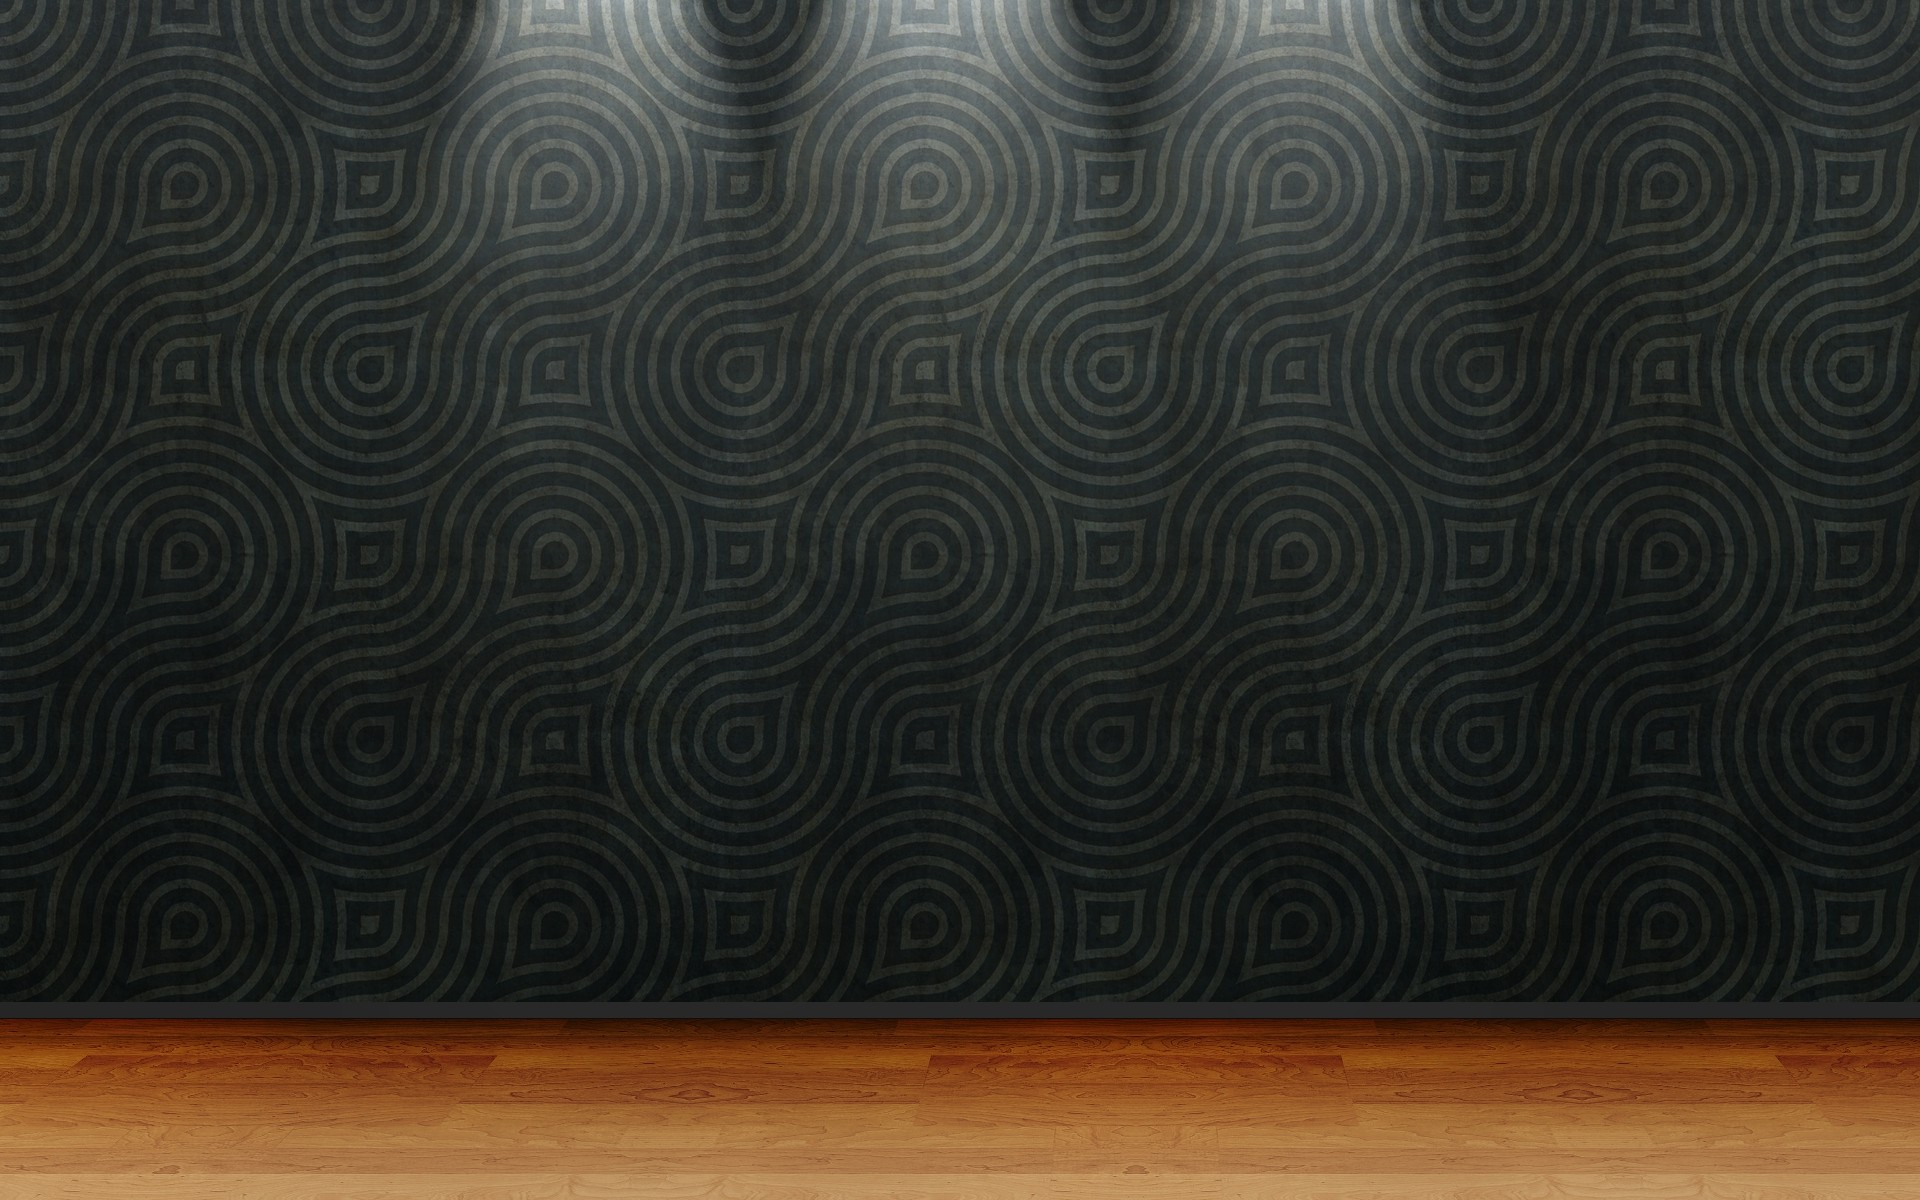 Black wallpaper with abstract patterns and flooring